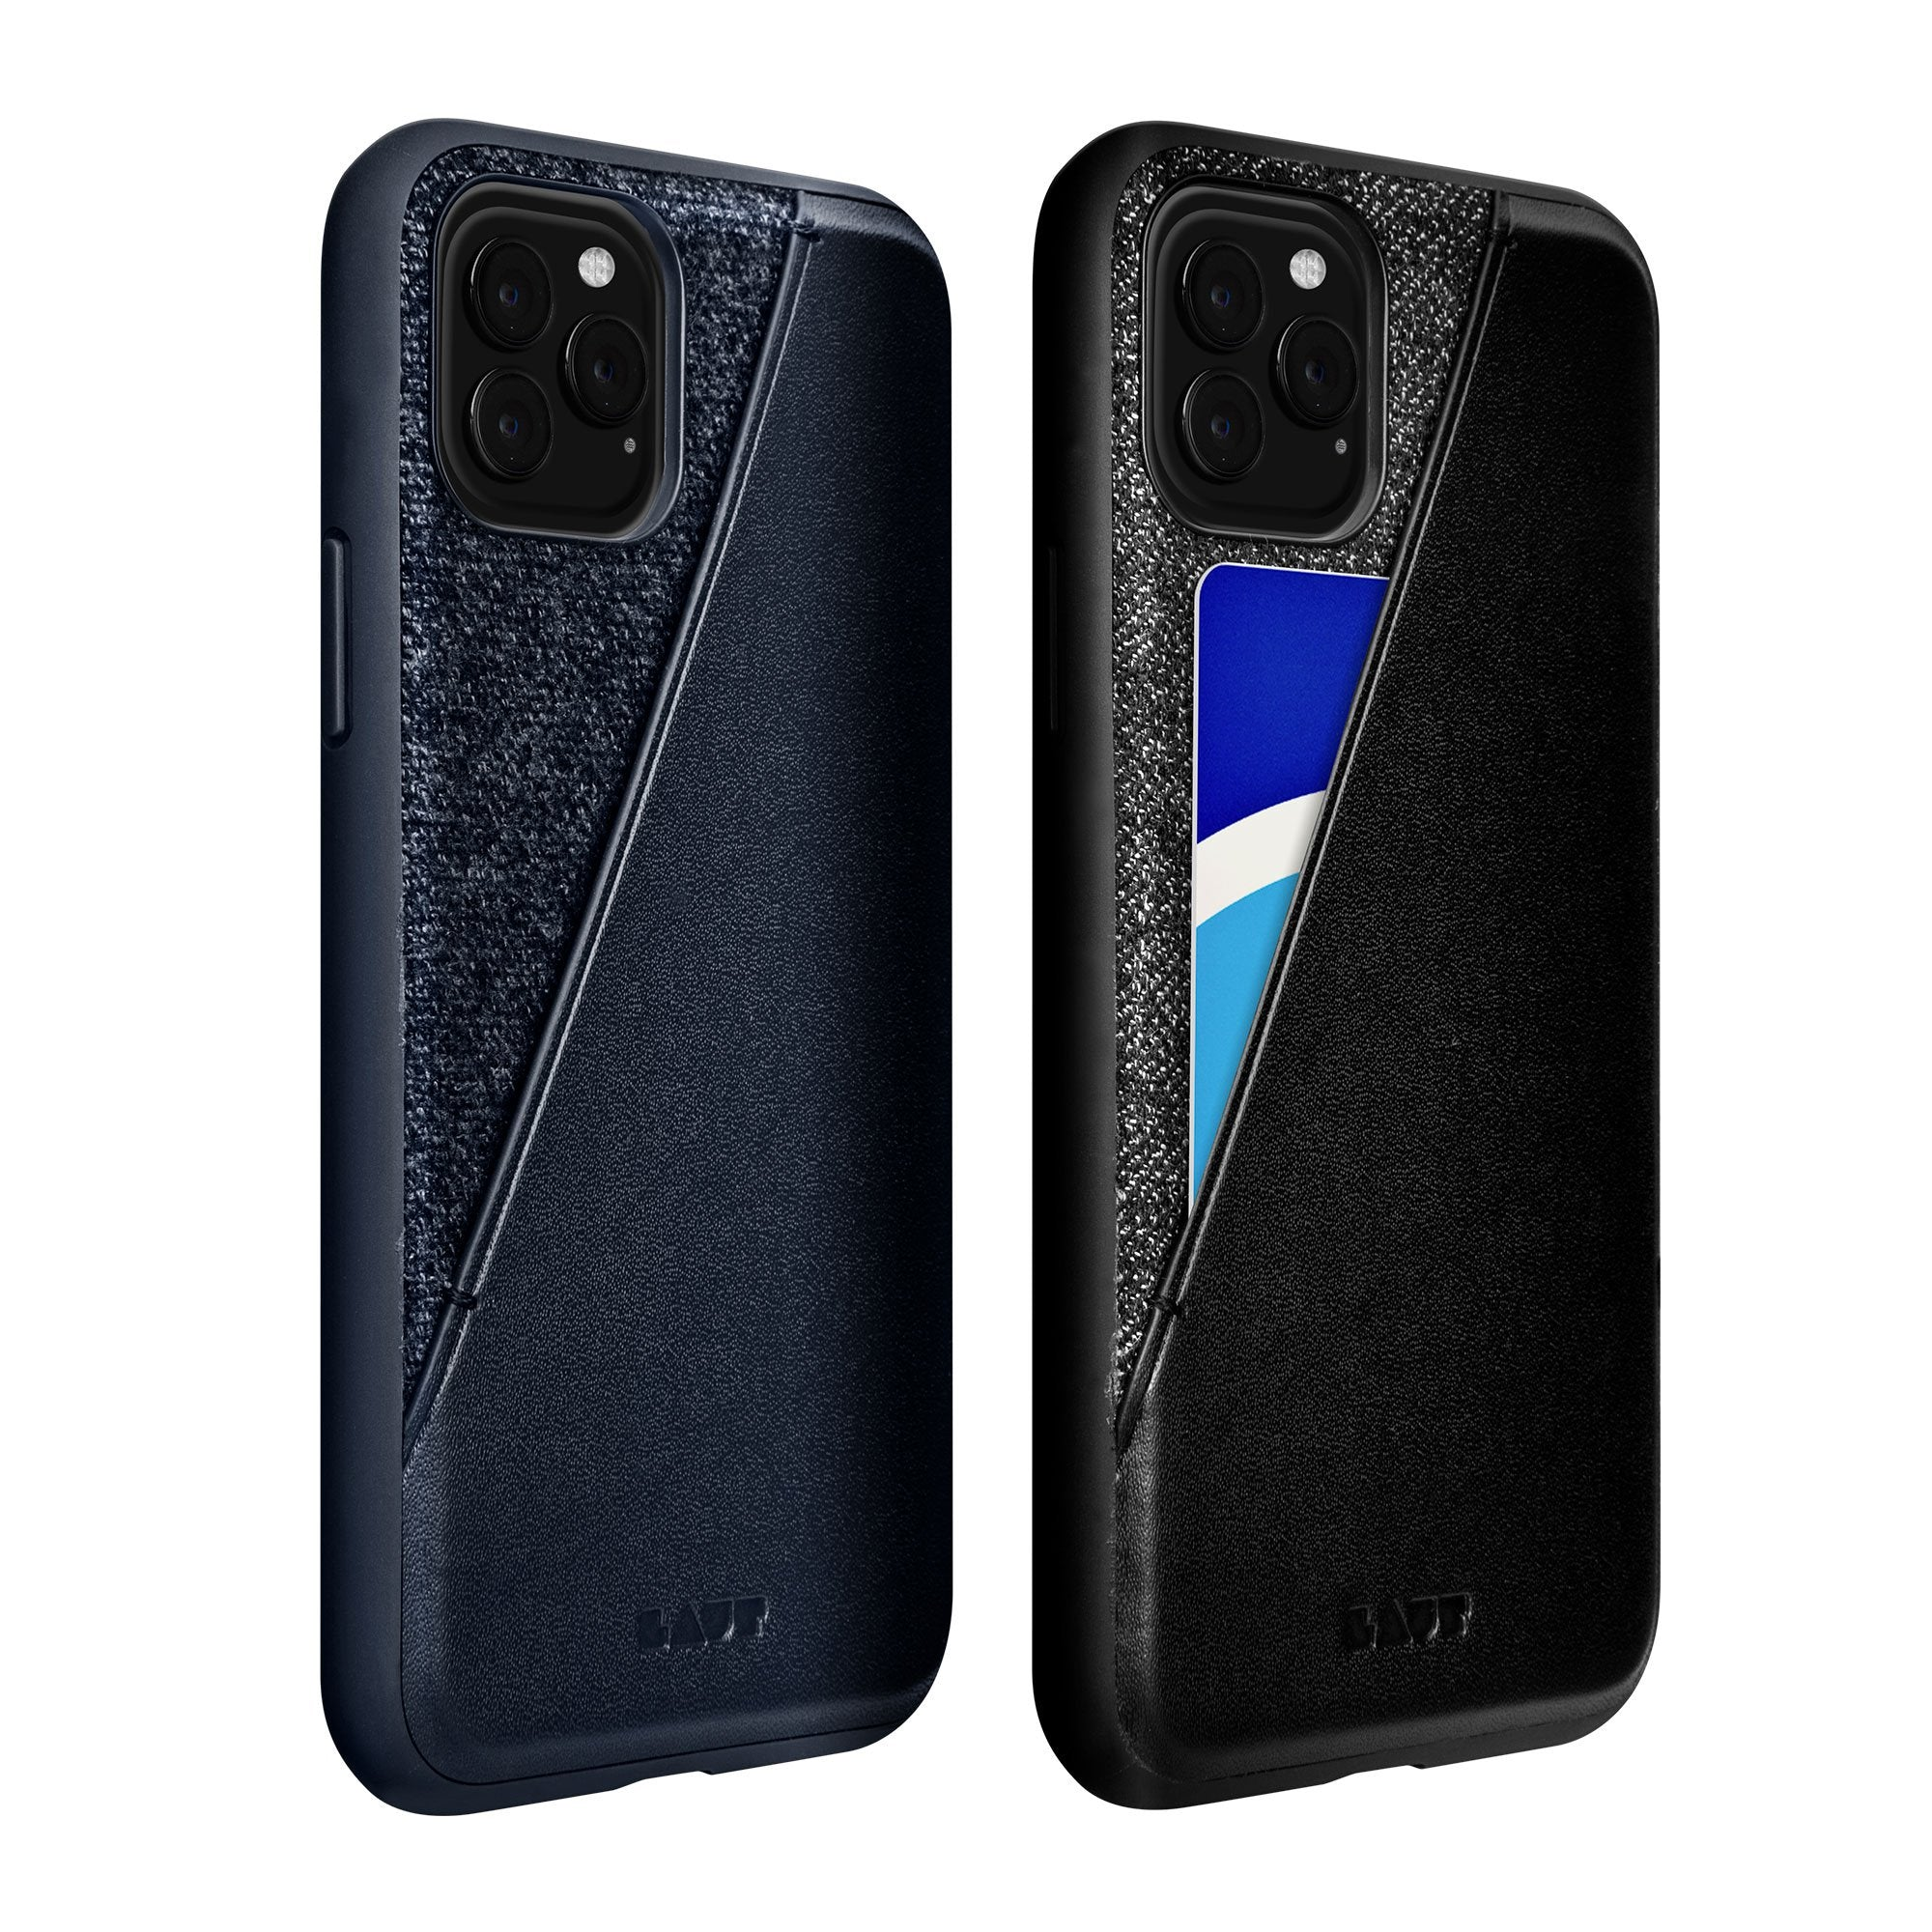 INFLIGHT CARD CASE for iPhone 11 Series - LAUT Japan